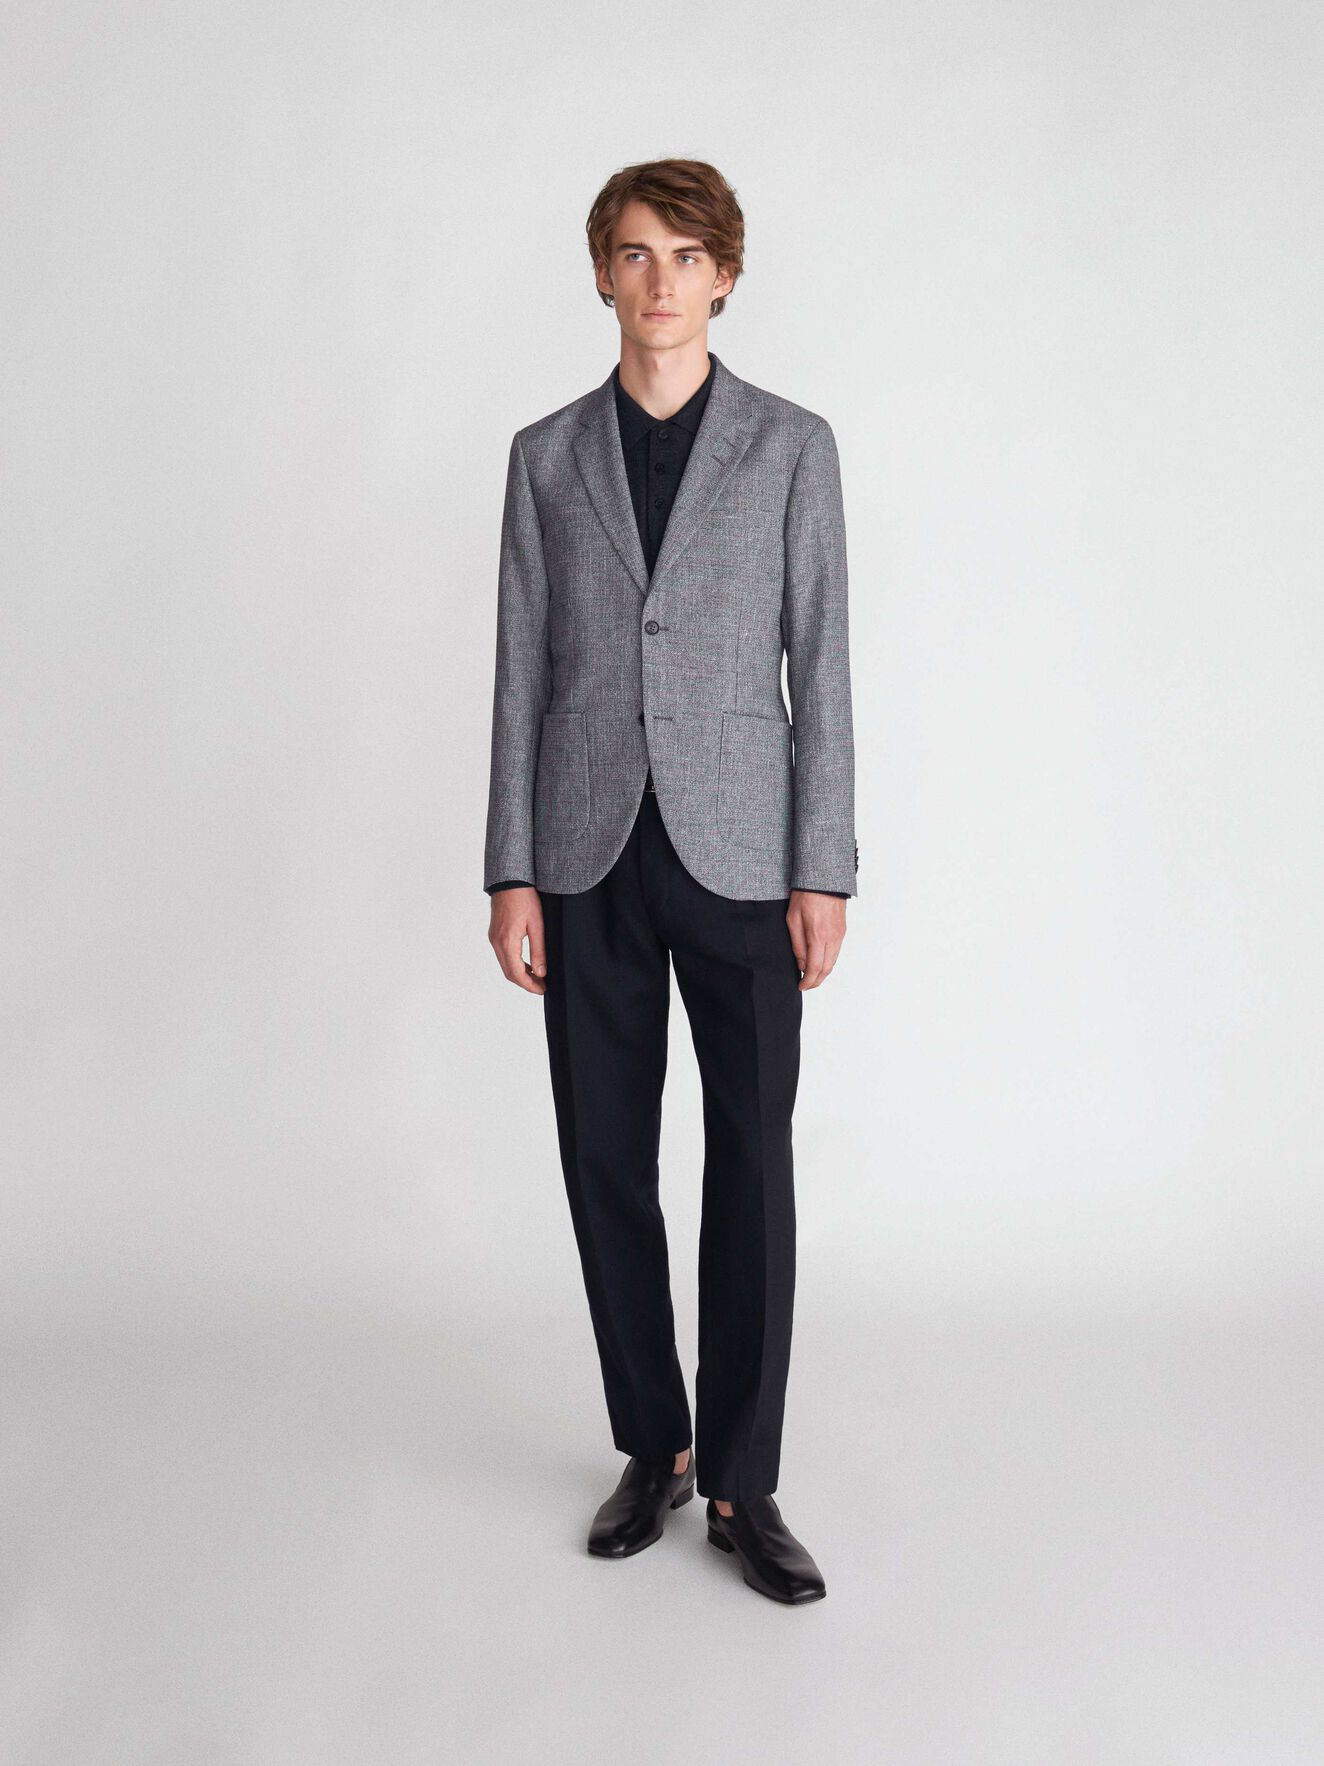 Jamot Hl Blazer in Light grey melange from Tiger of Sweden